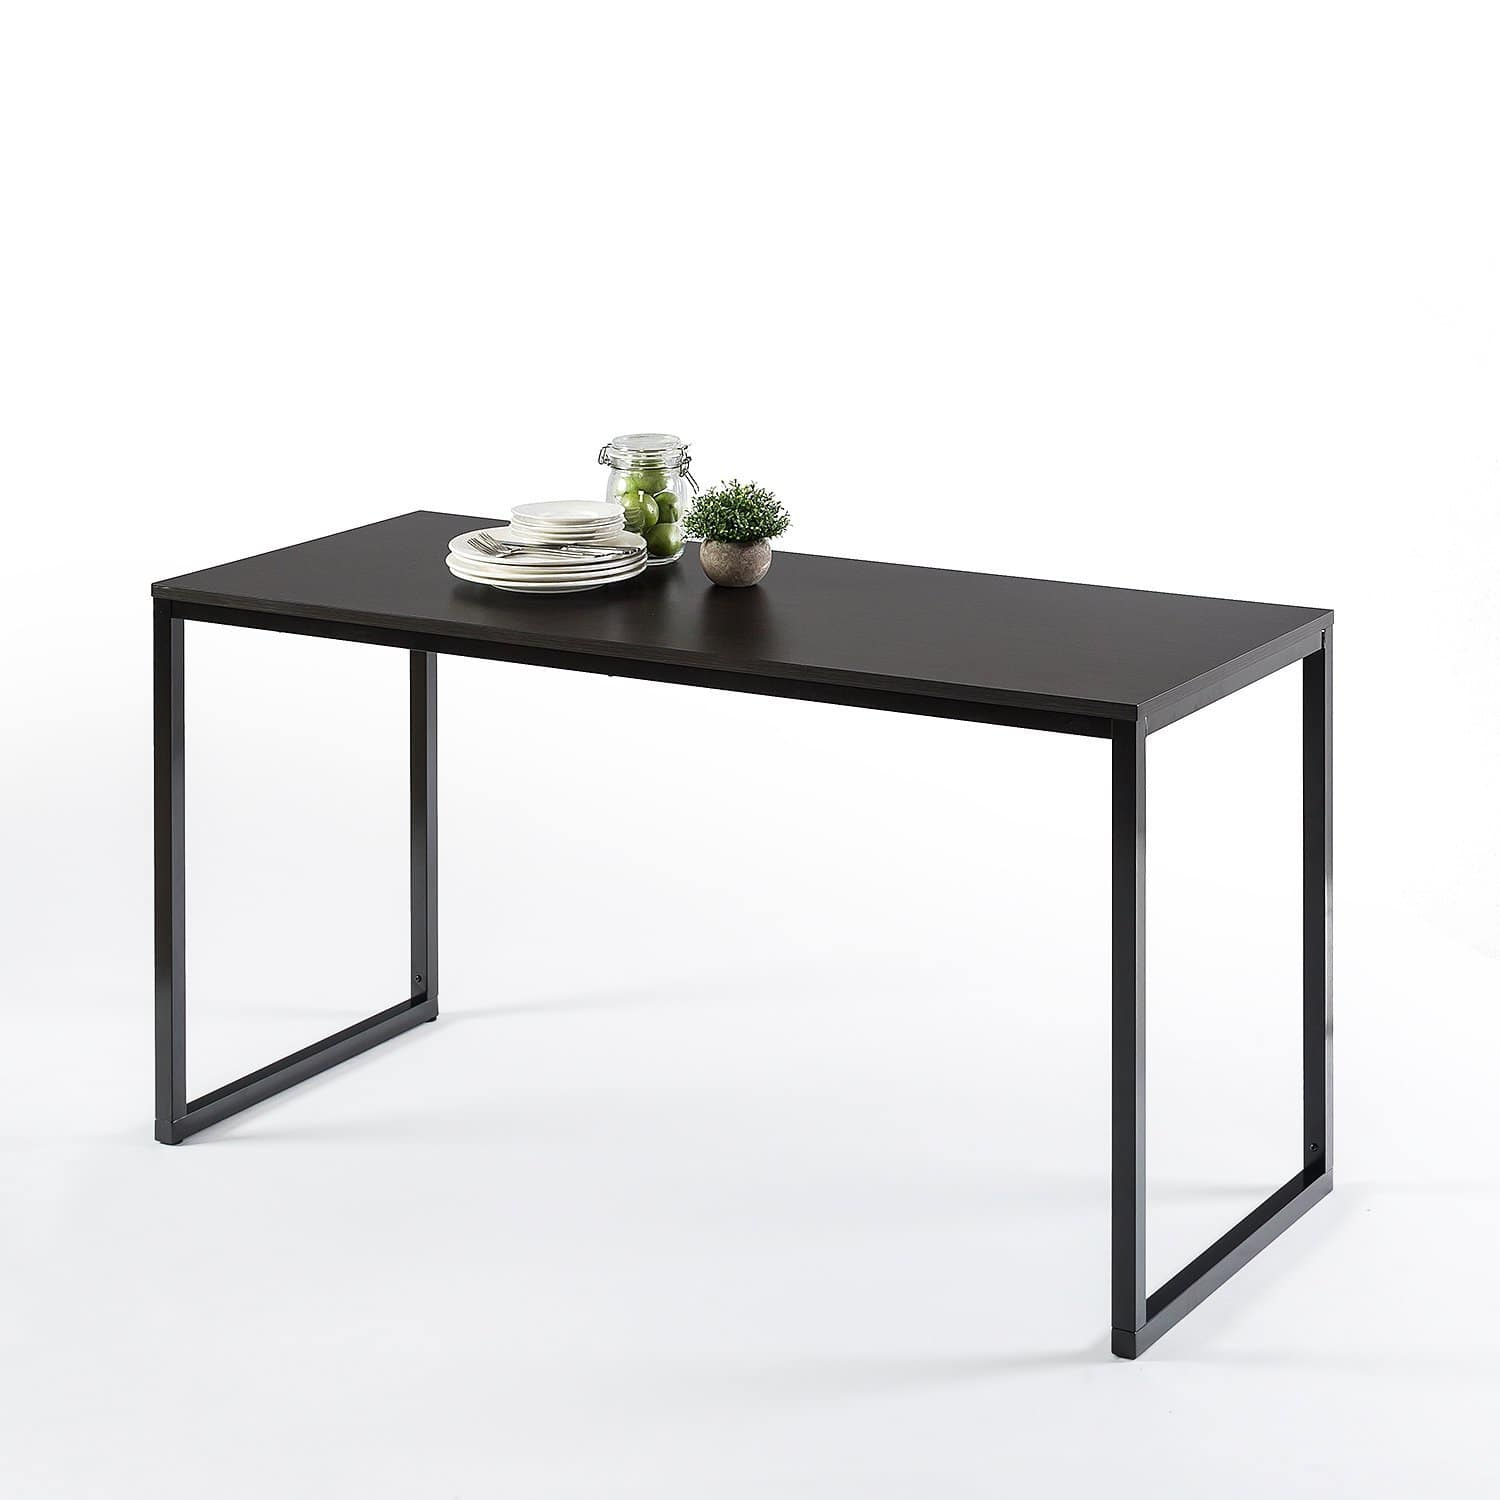 Zinus Jennifer Modern Studio Collection Soho Rectangular Dining Table / Table Only / Office Desk / Computer Table, Espresso